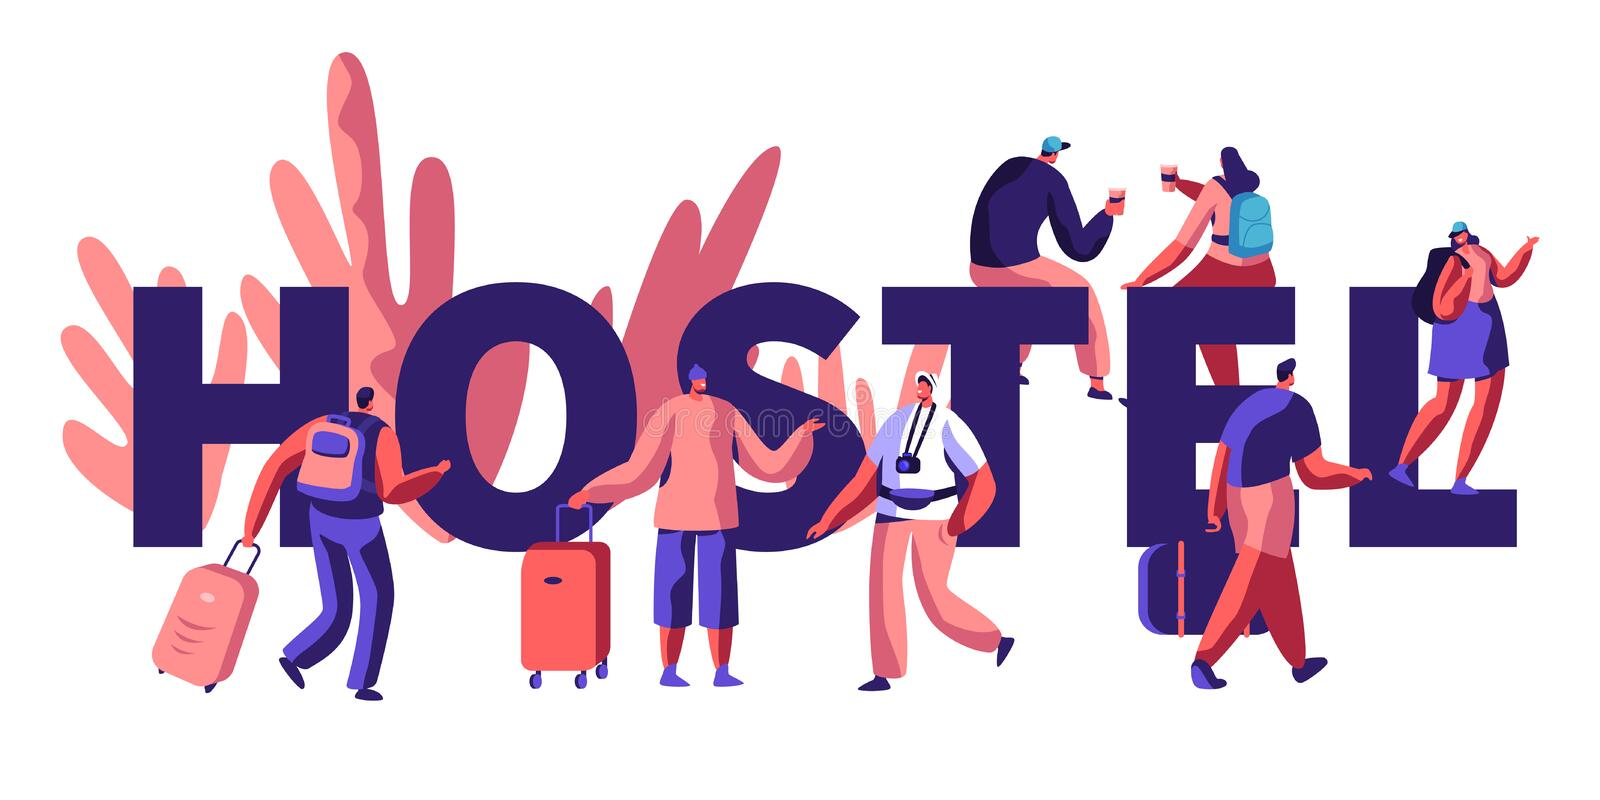 Hostel for Tourist Banner. Arrival of Character for Visit City. Lower Price, Cheap Place for Living or Night. Alternative Home. For some Day. Room for stock illustration